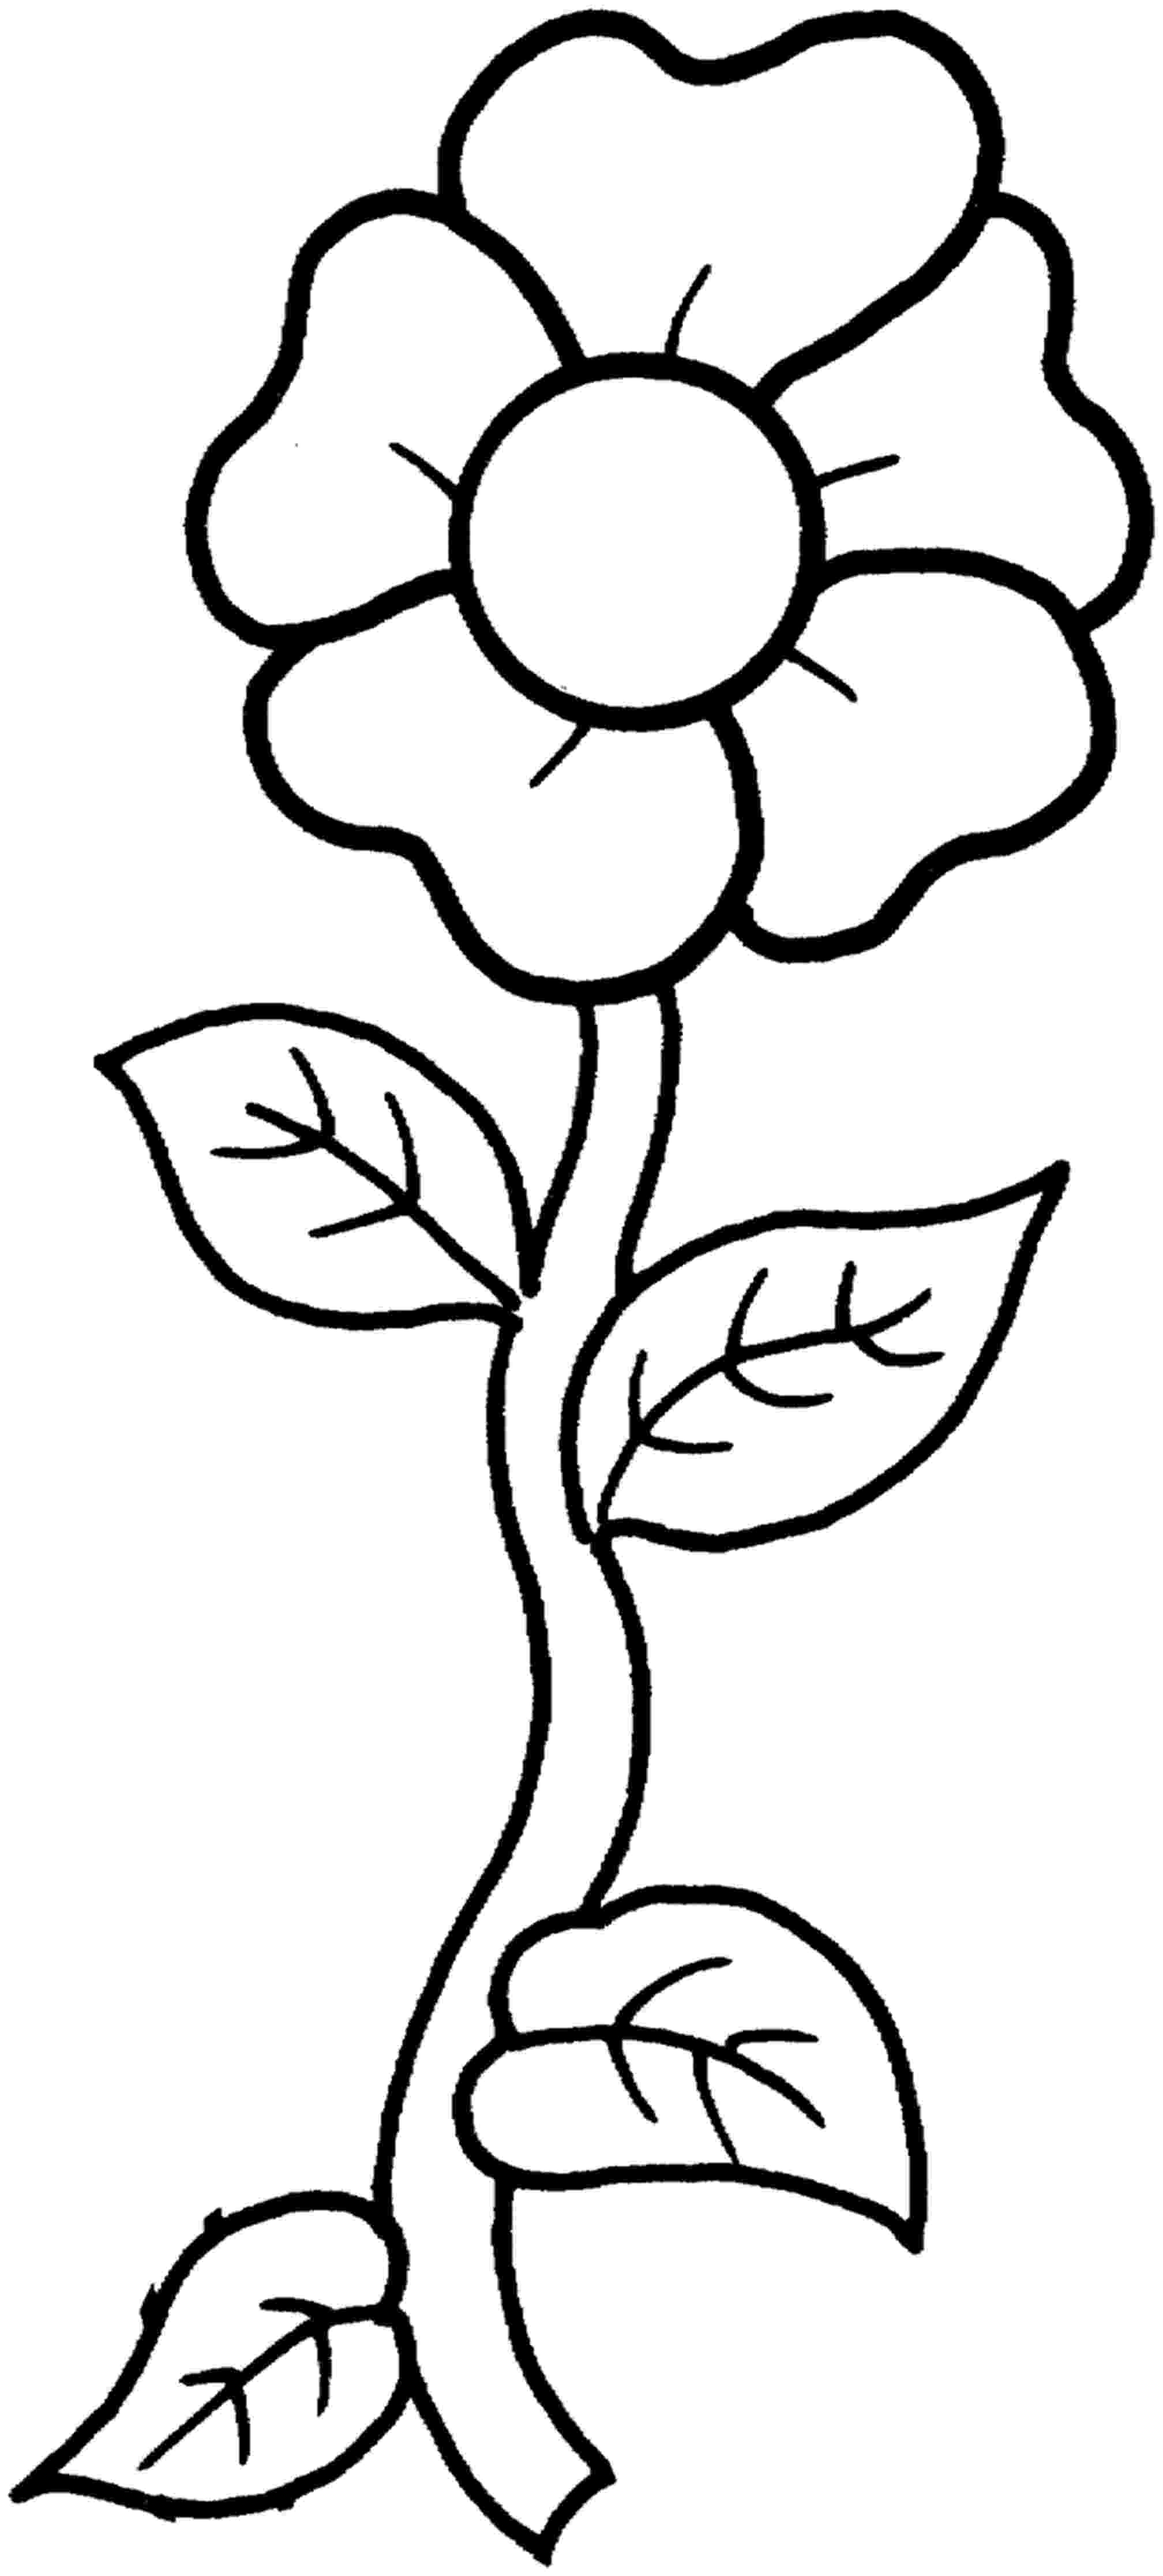 free printable flowers to color free printable flower coloring pages for kids best free printable color to flowers